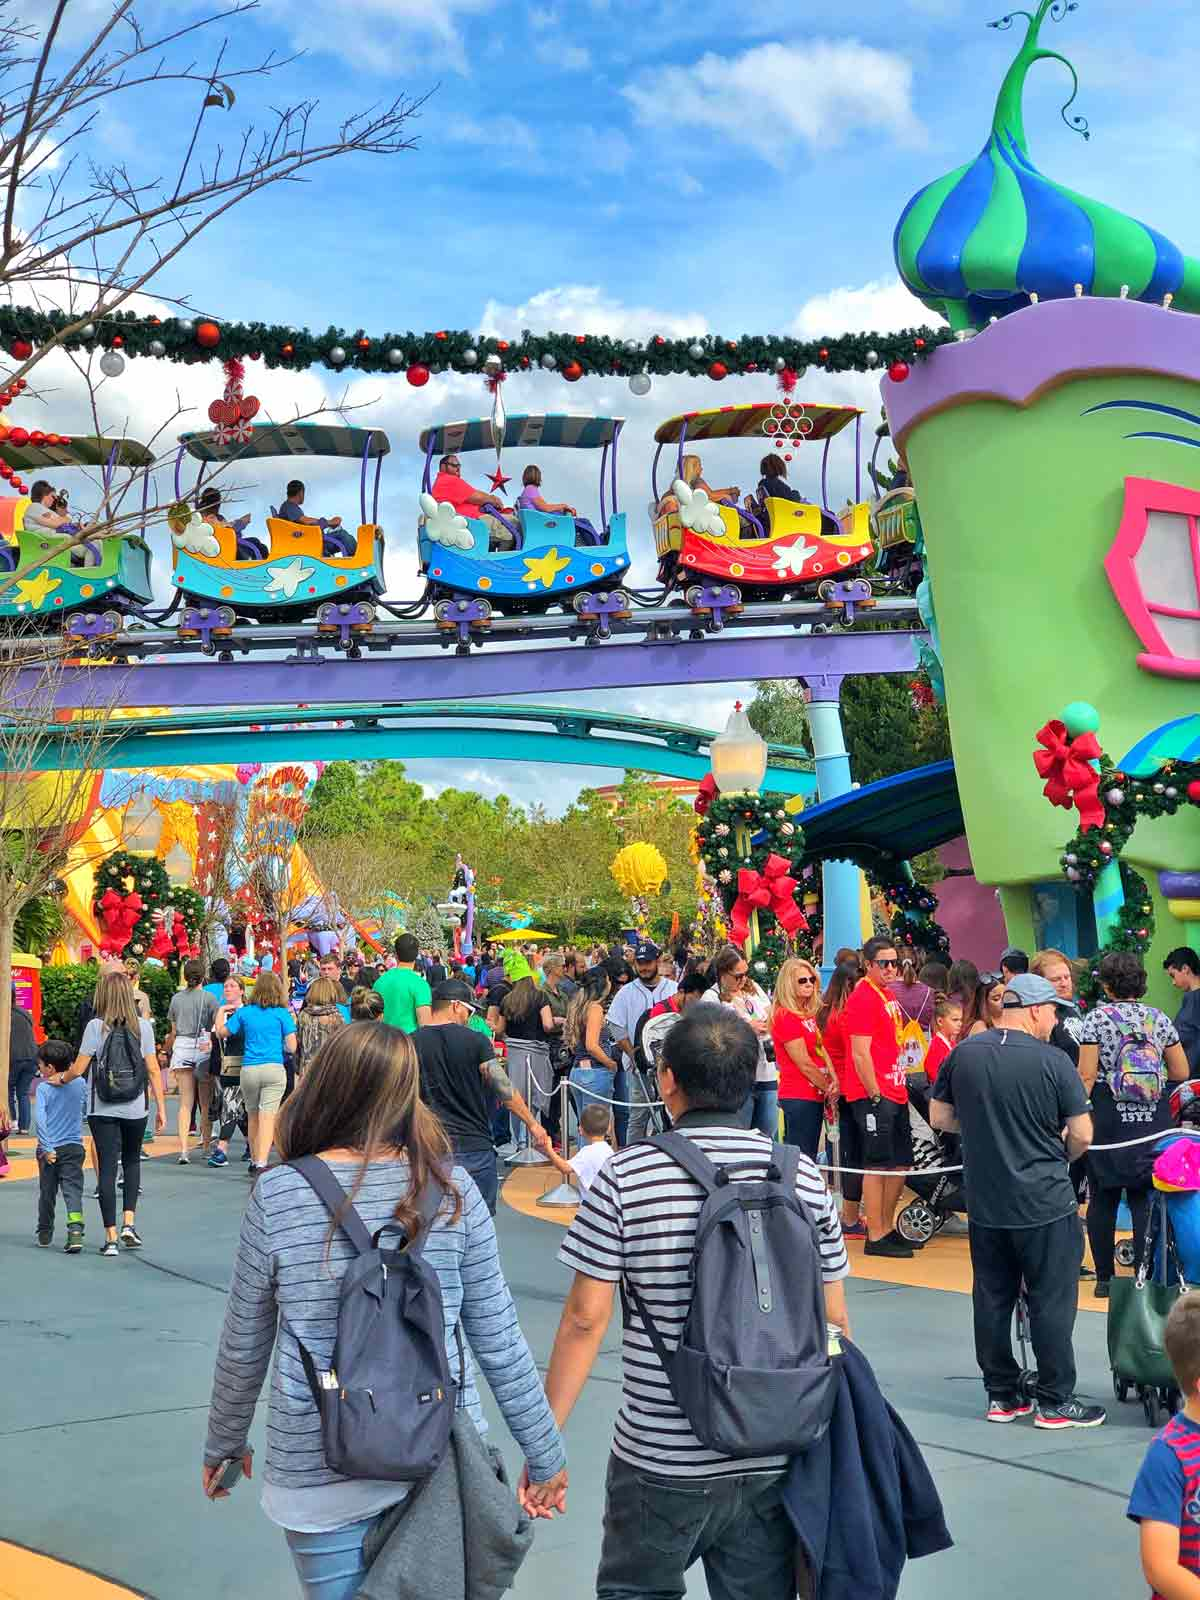 The-Grinch-ride